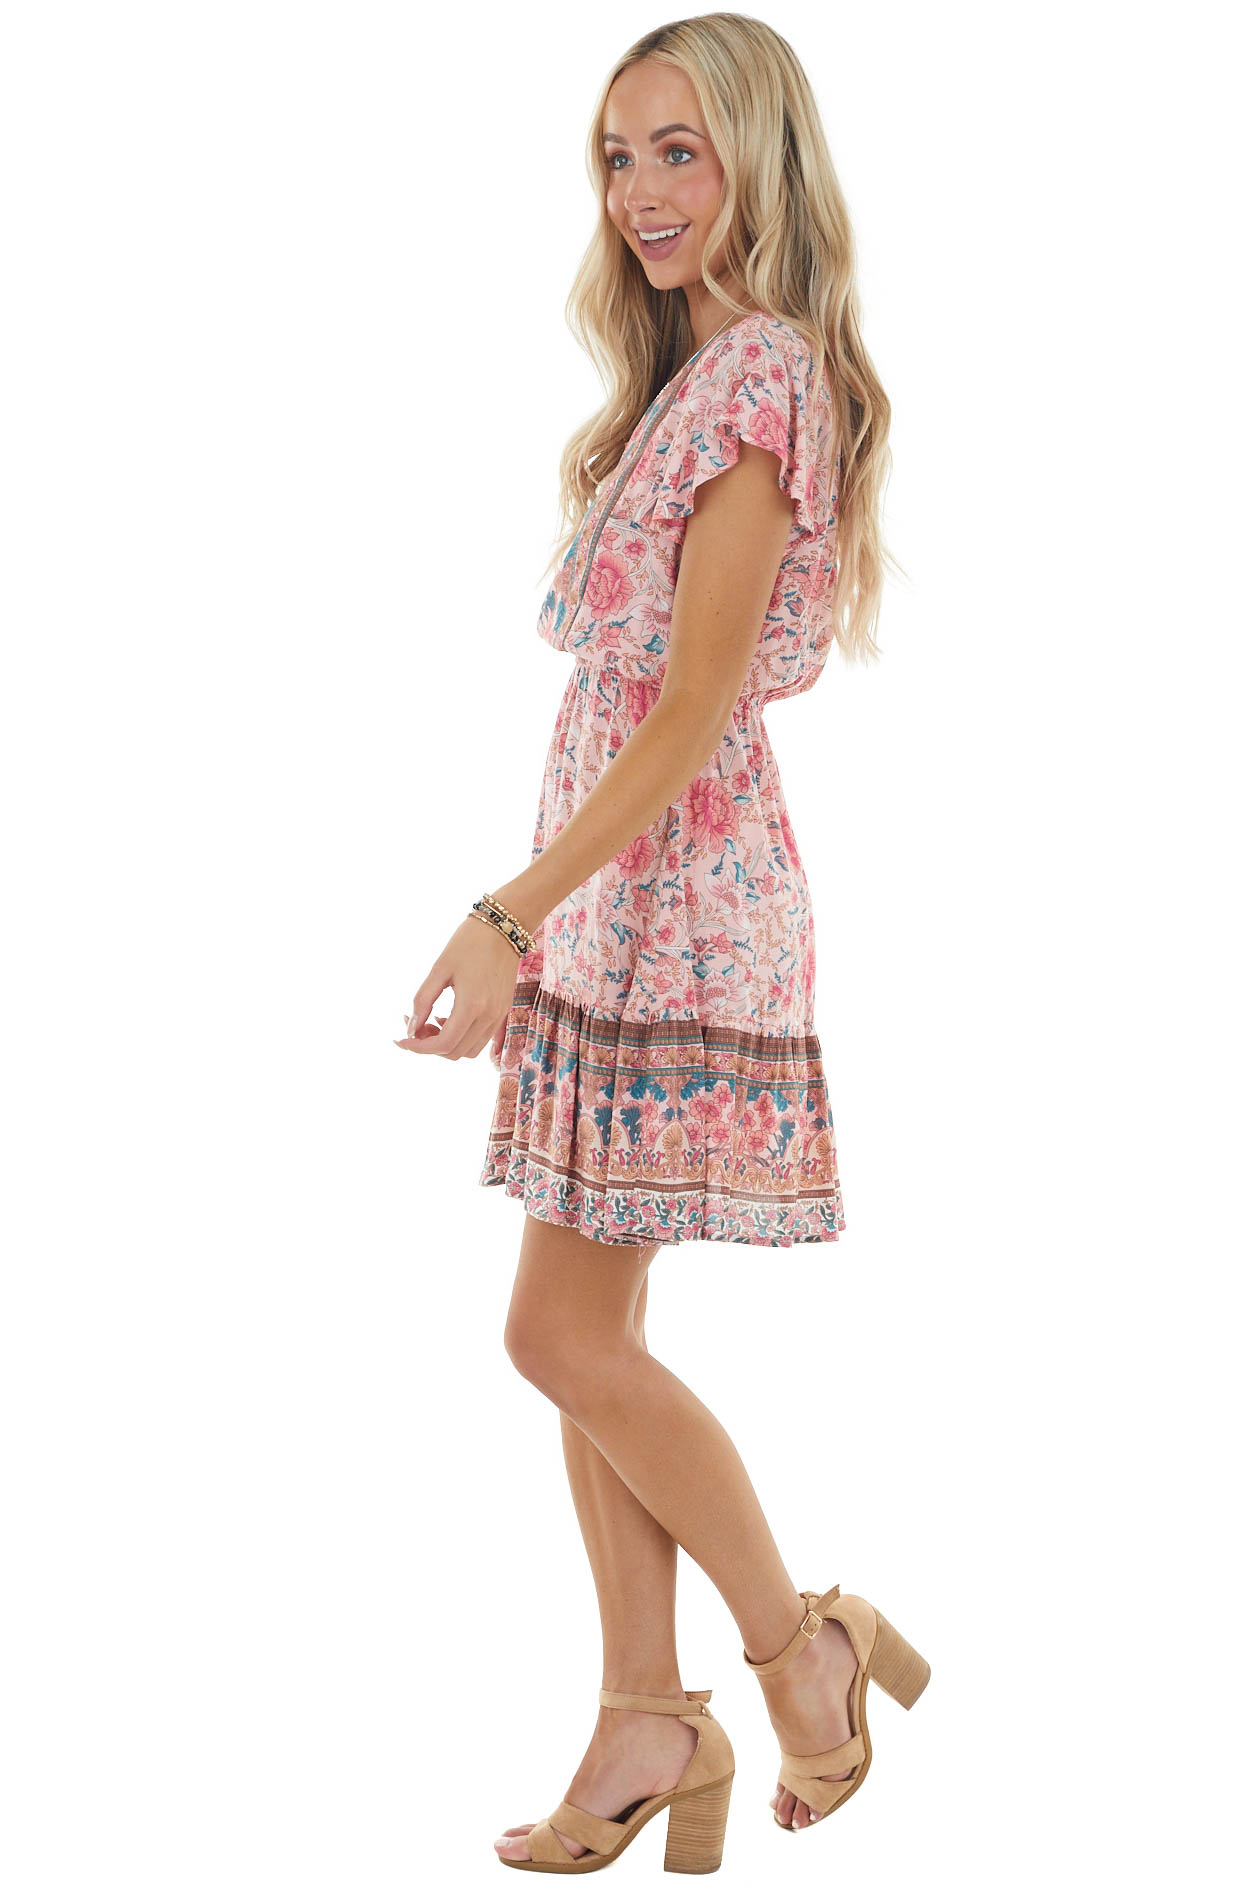 Carnation Floral Abstract Print Woven V Neck Mini Dress